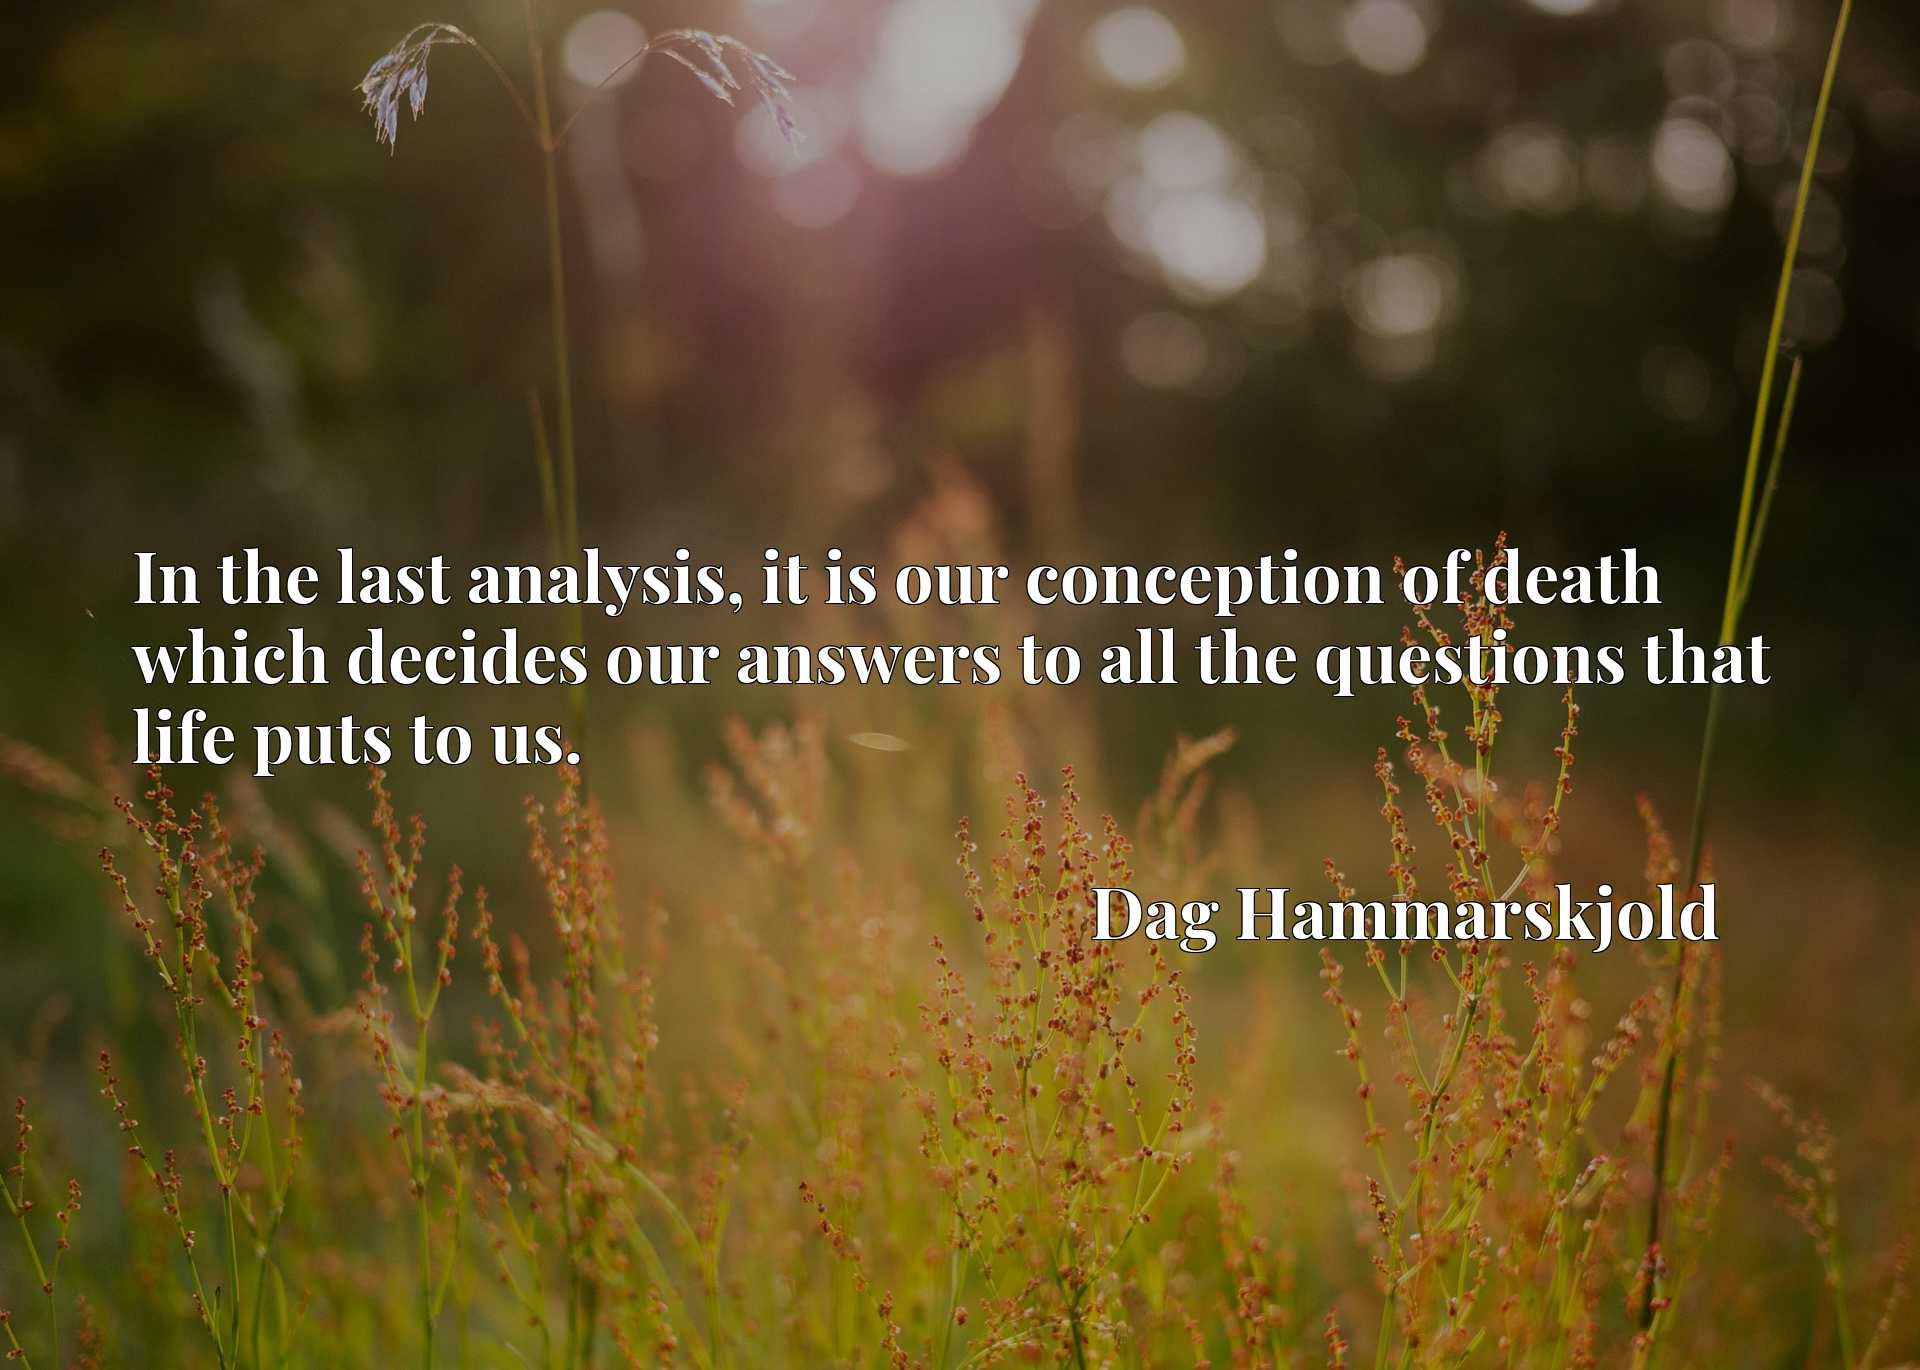 In the last analysis, it is our conception of death which decides our answers to all the questions that life puts to us.